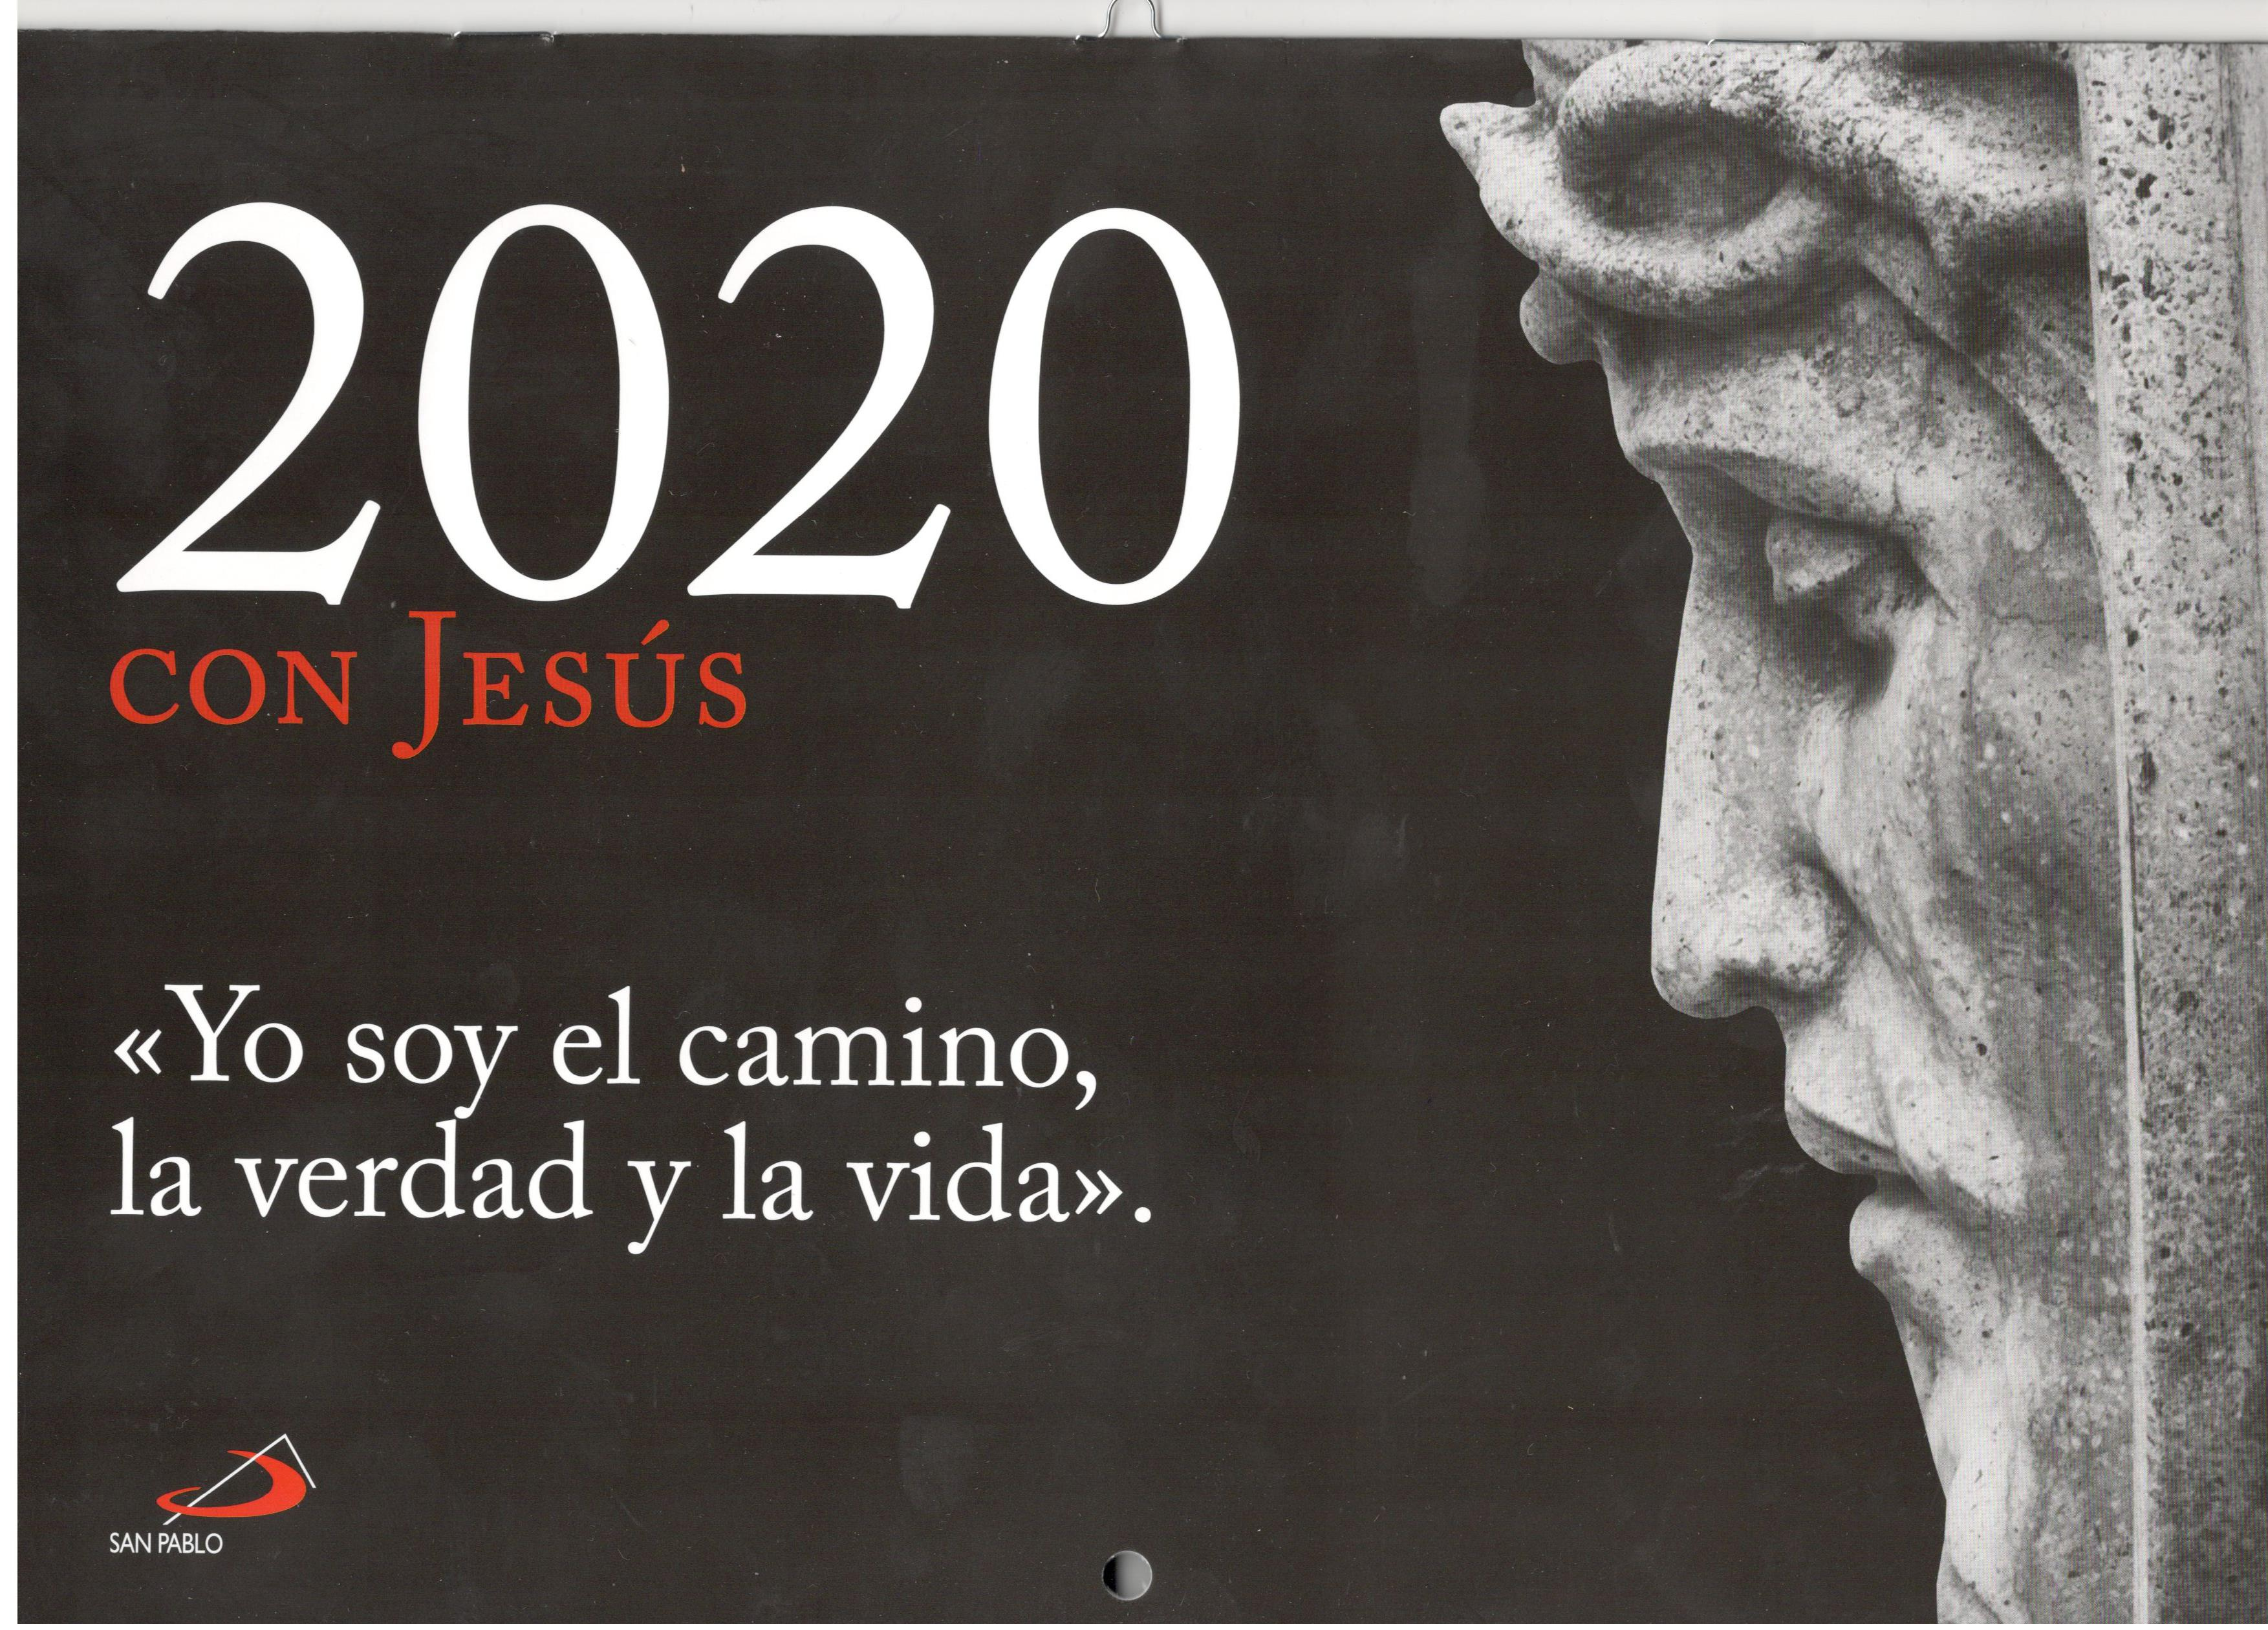 CALENDARIO CON JESUS PARED 2020